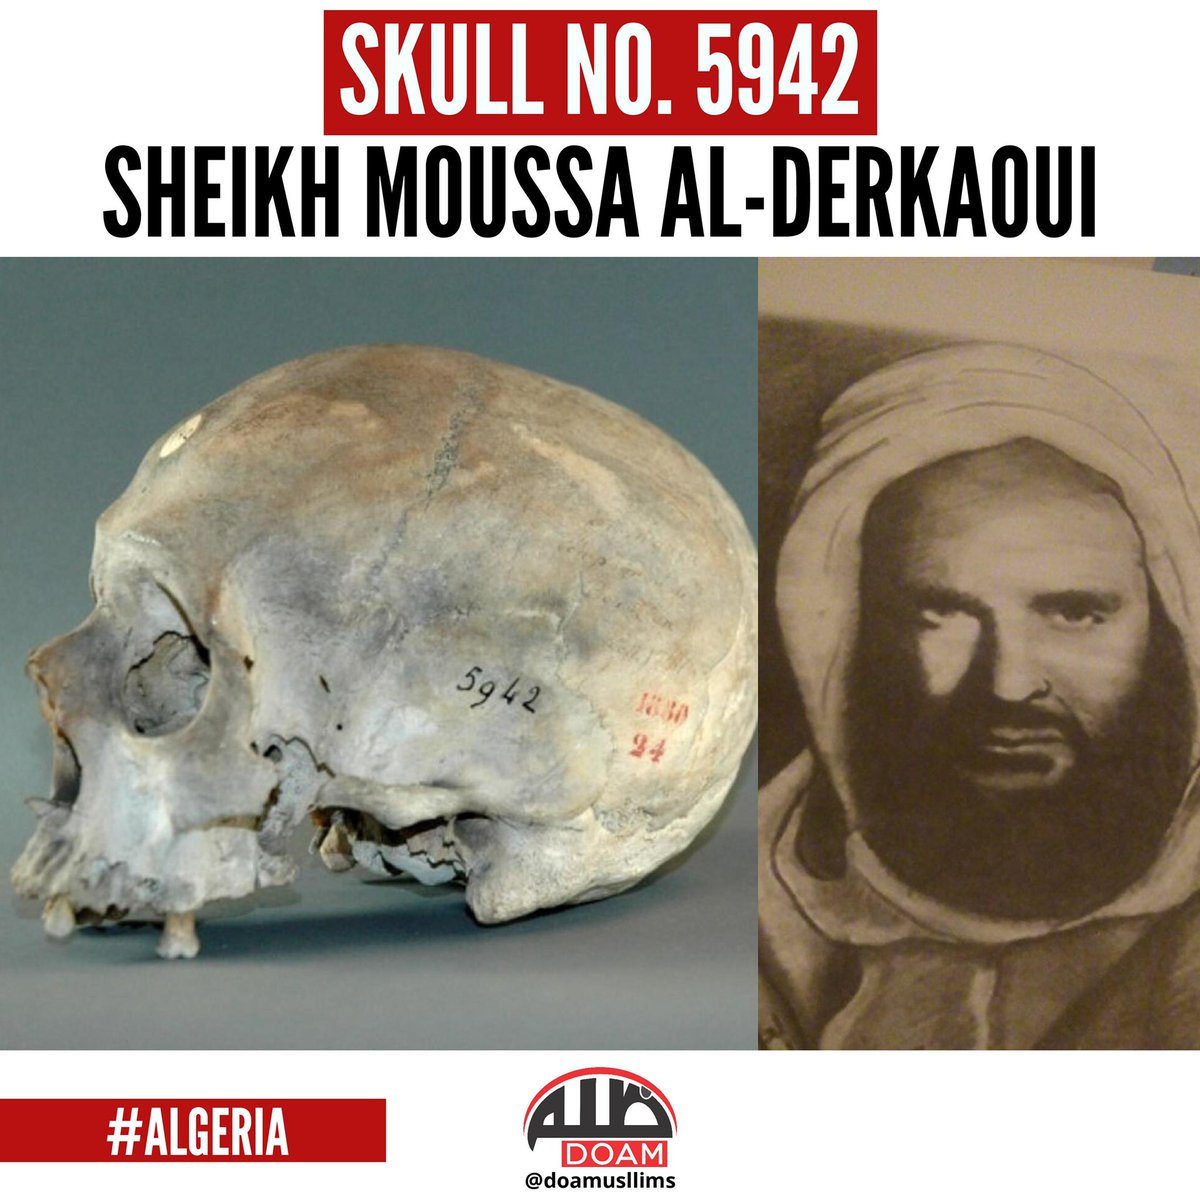 "زاھىد ئەختەر - Zahid Akhtar on Twitter: ""Skull No. 5942 #France returned  the skulls of 24 #Algeria